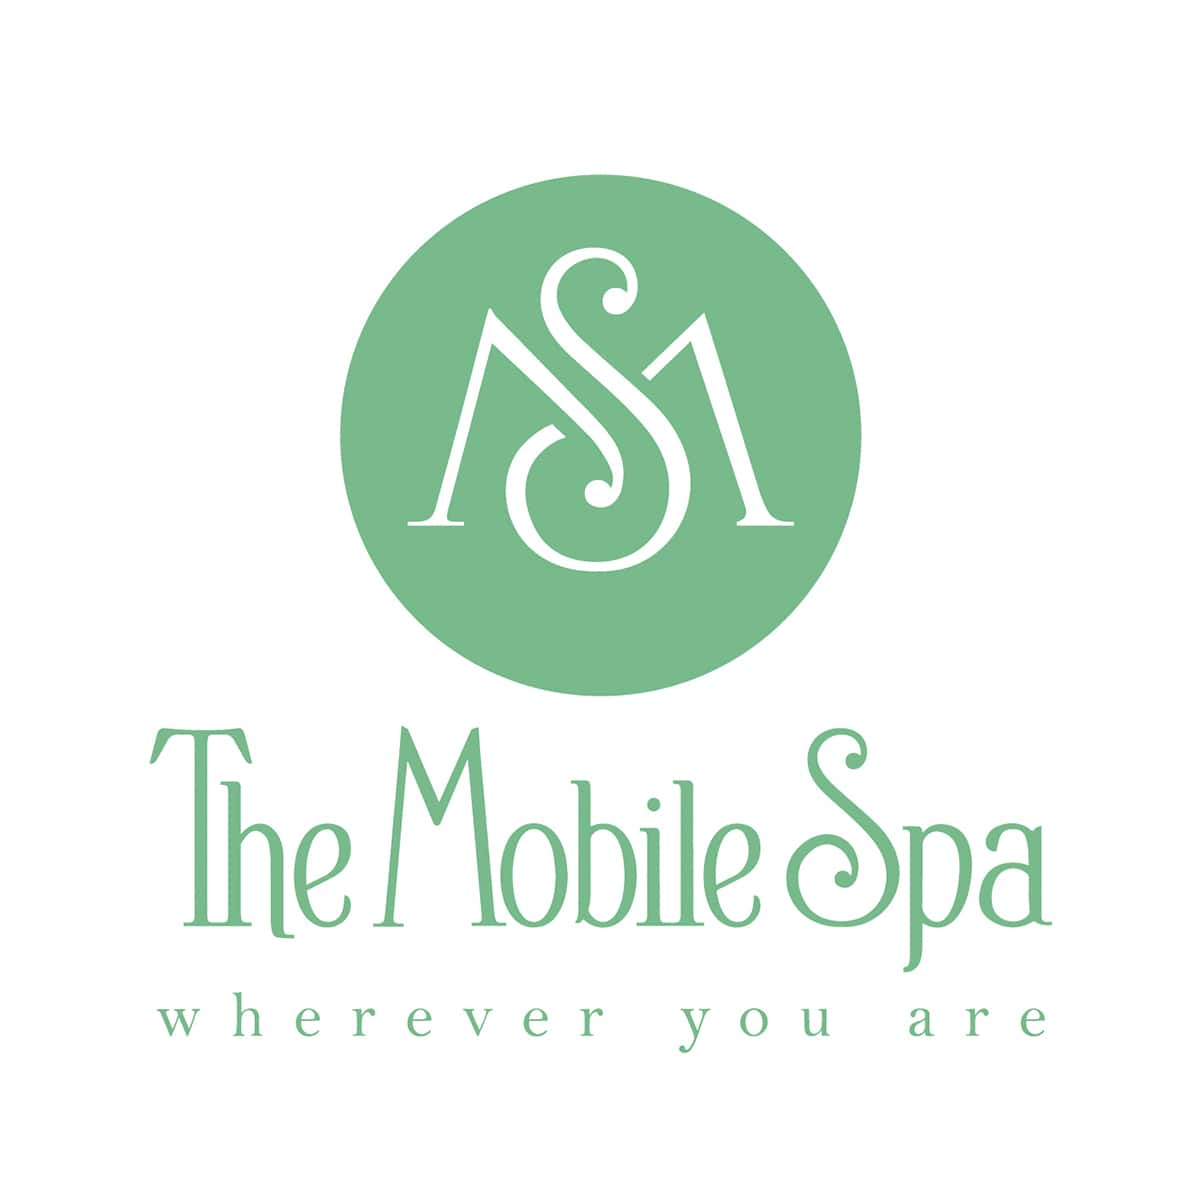 the mobile spa rebranding